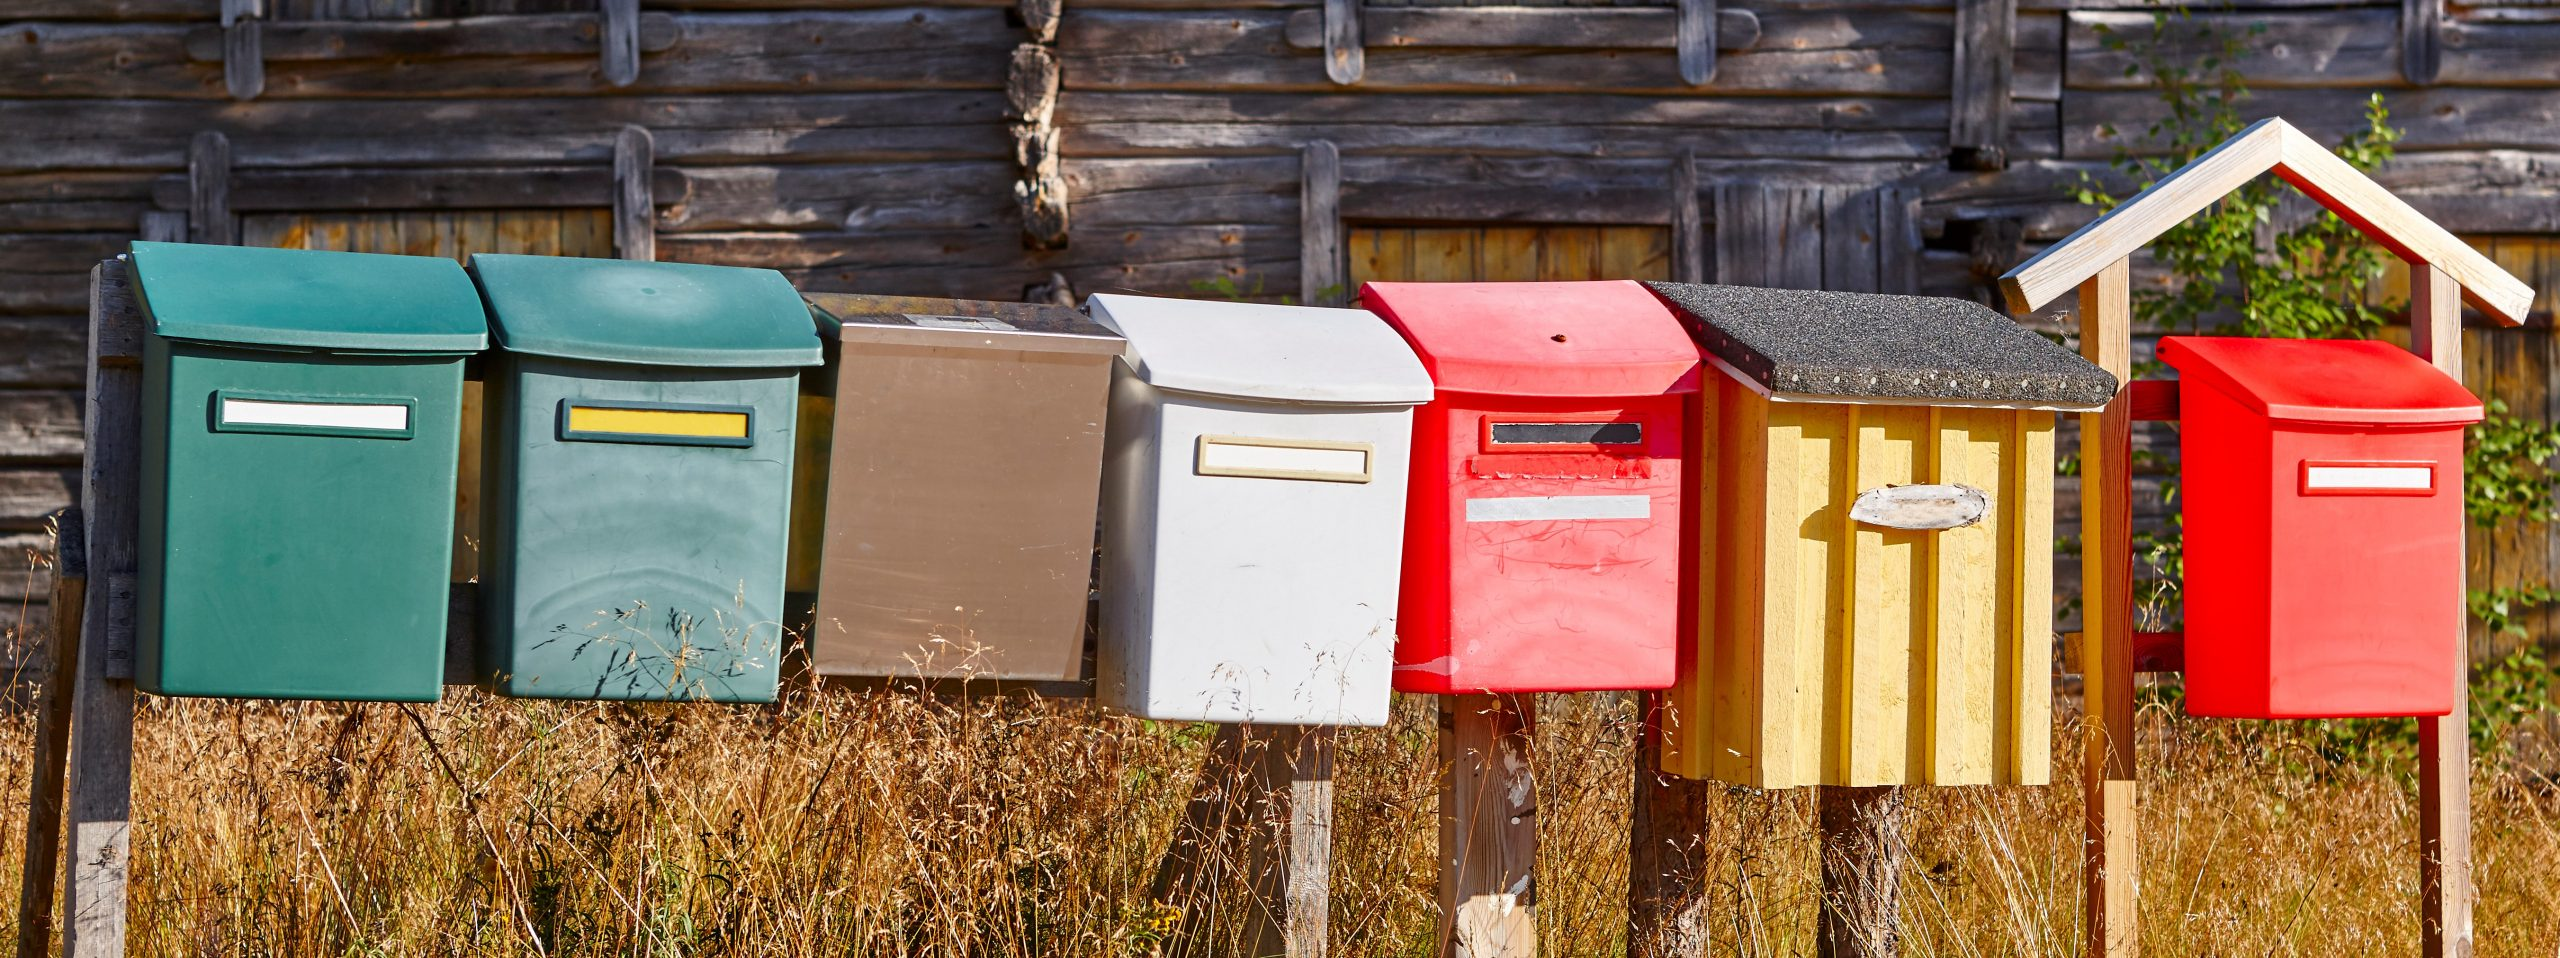 Traditional colorful vintage mailboxes in the countryside. Horizontal